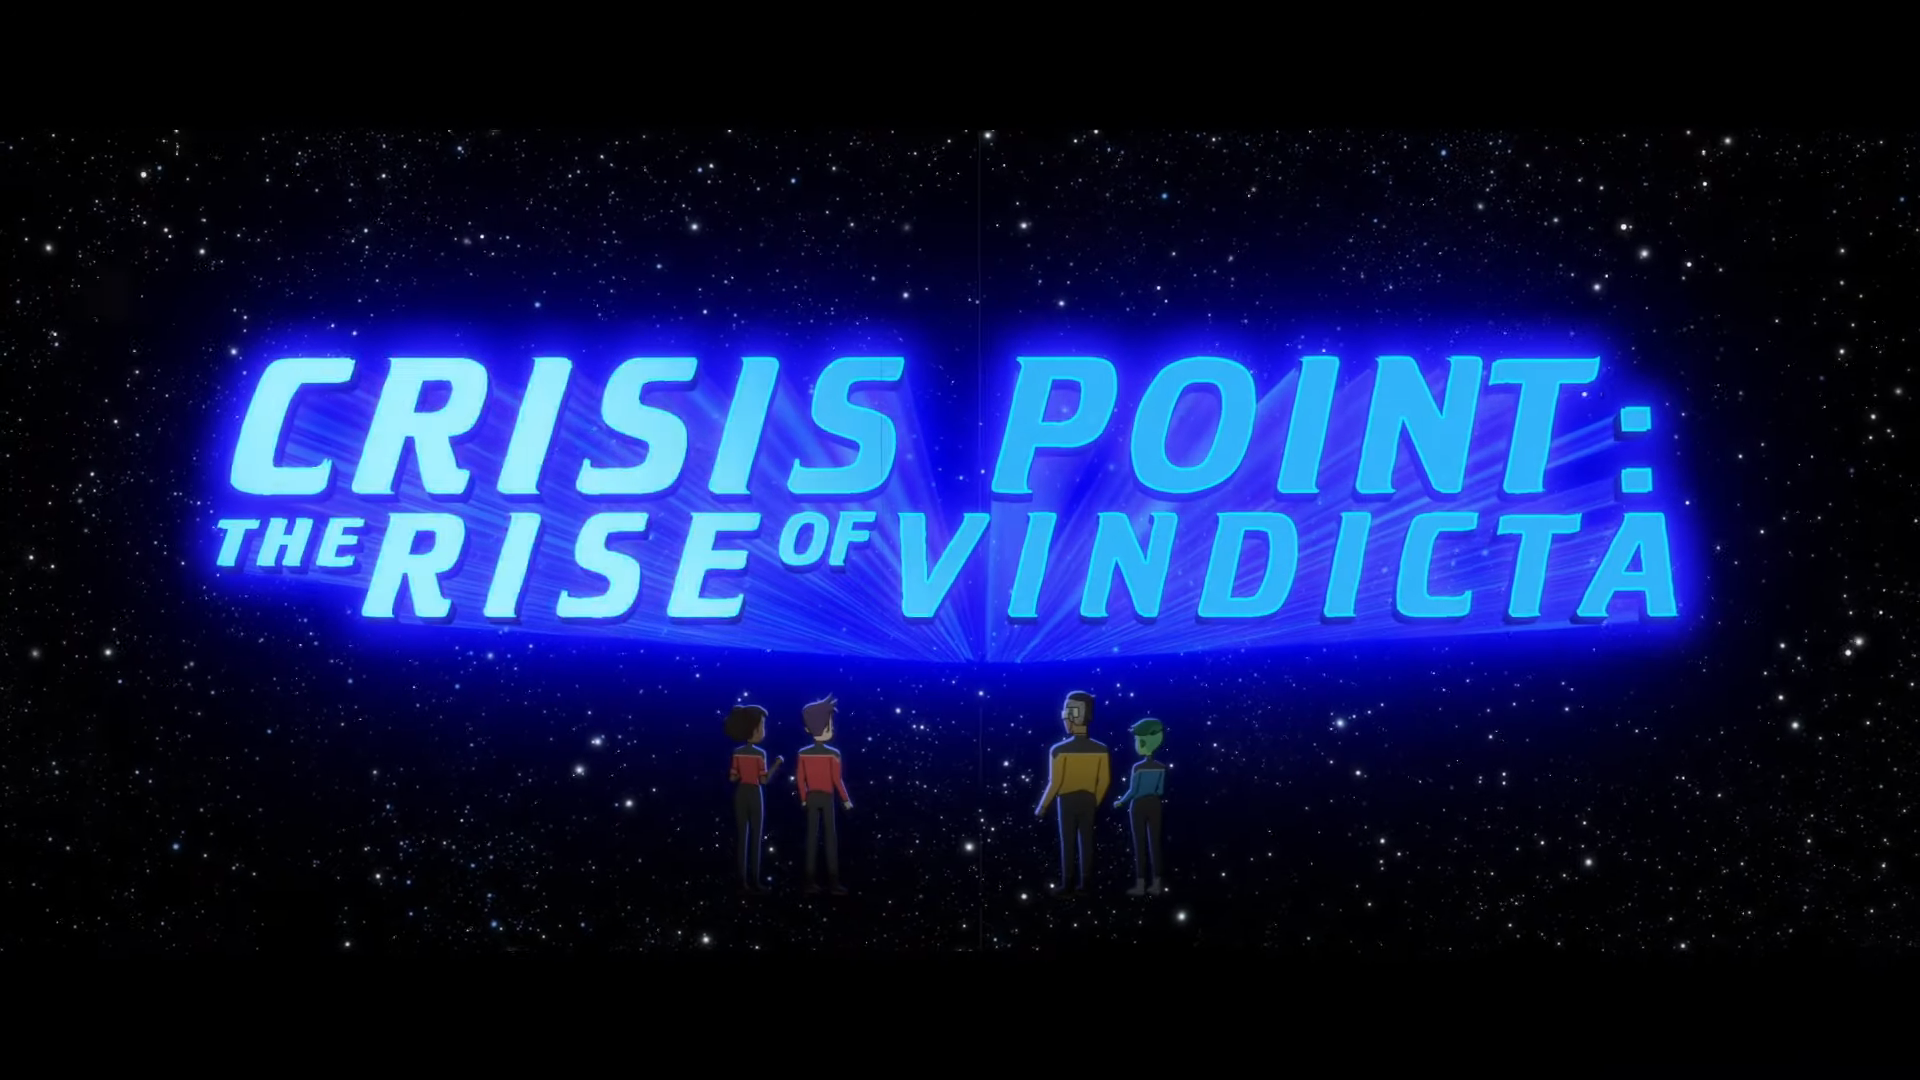 Crisis Point: The Rise of Vindicta